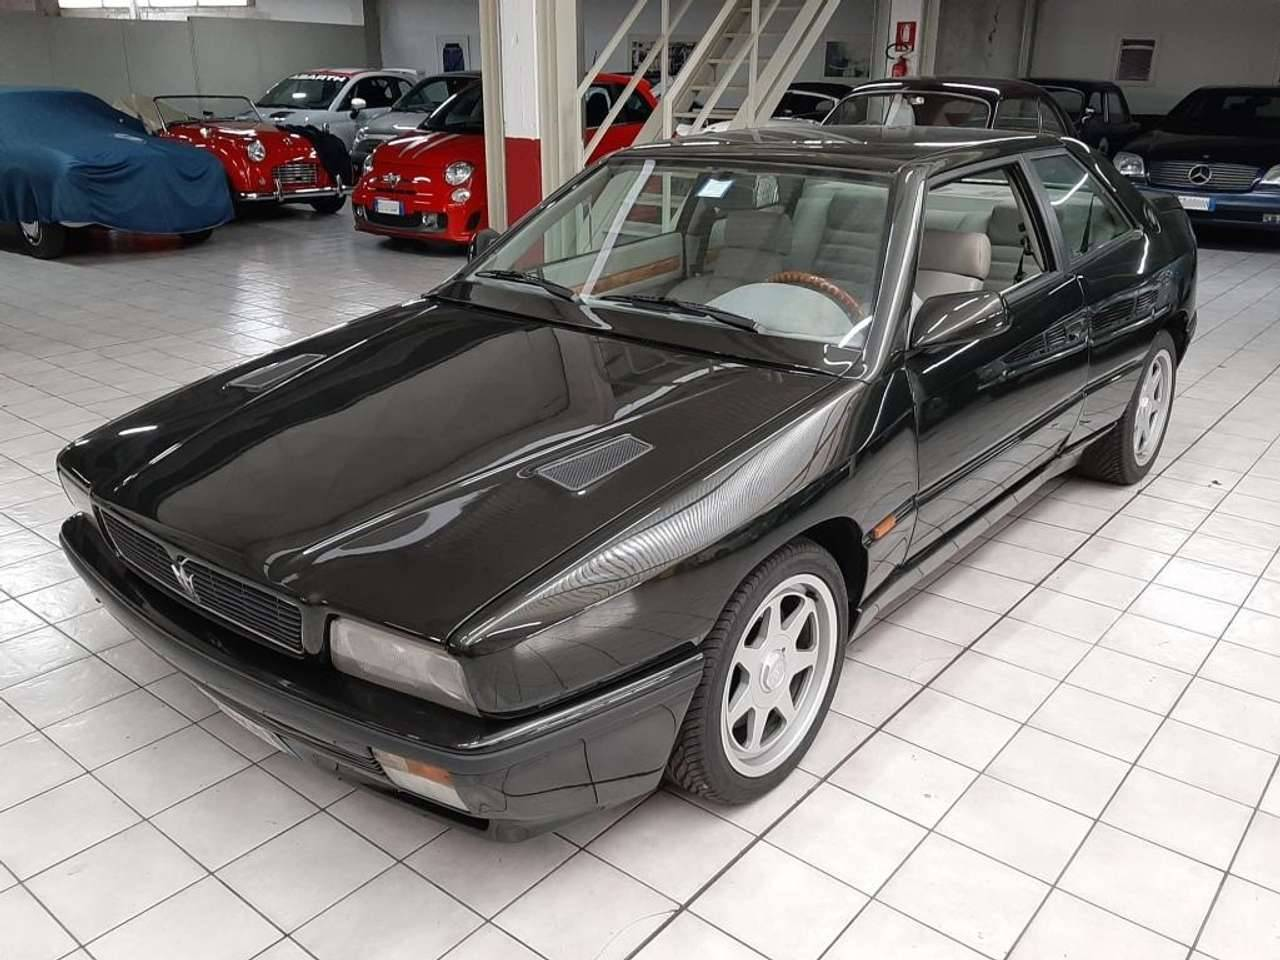 For Sale: Maserati Ghibli 2.0 (1992) offered for AUD 40,730